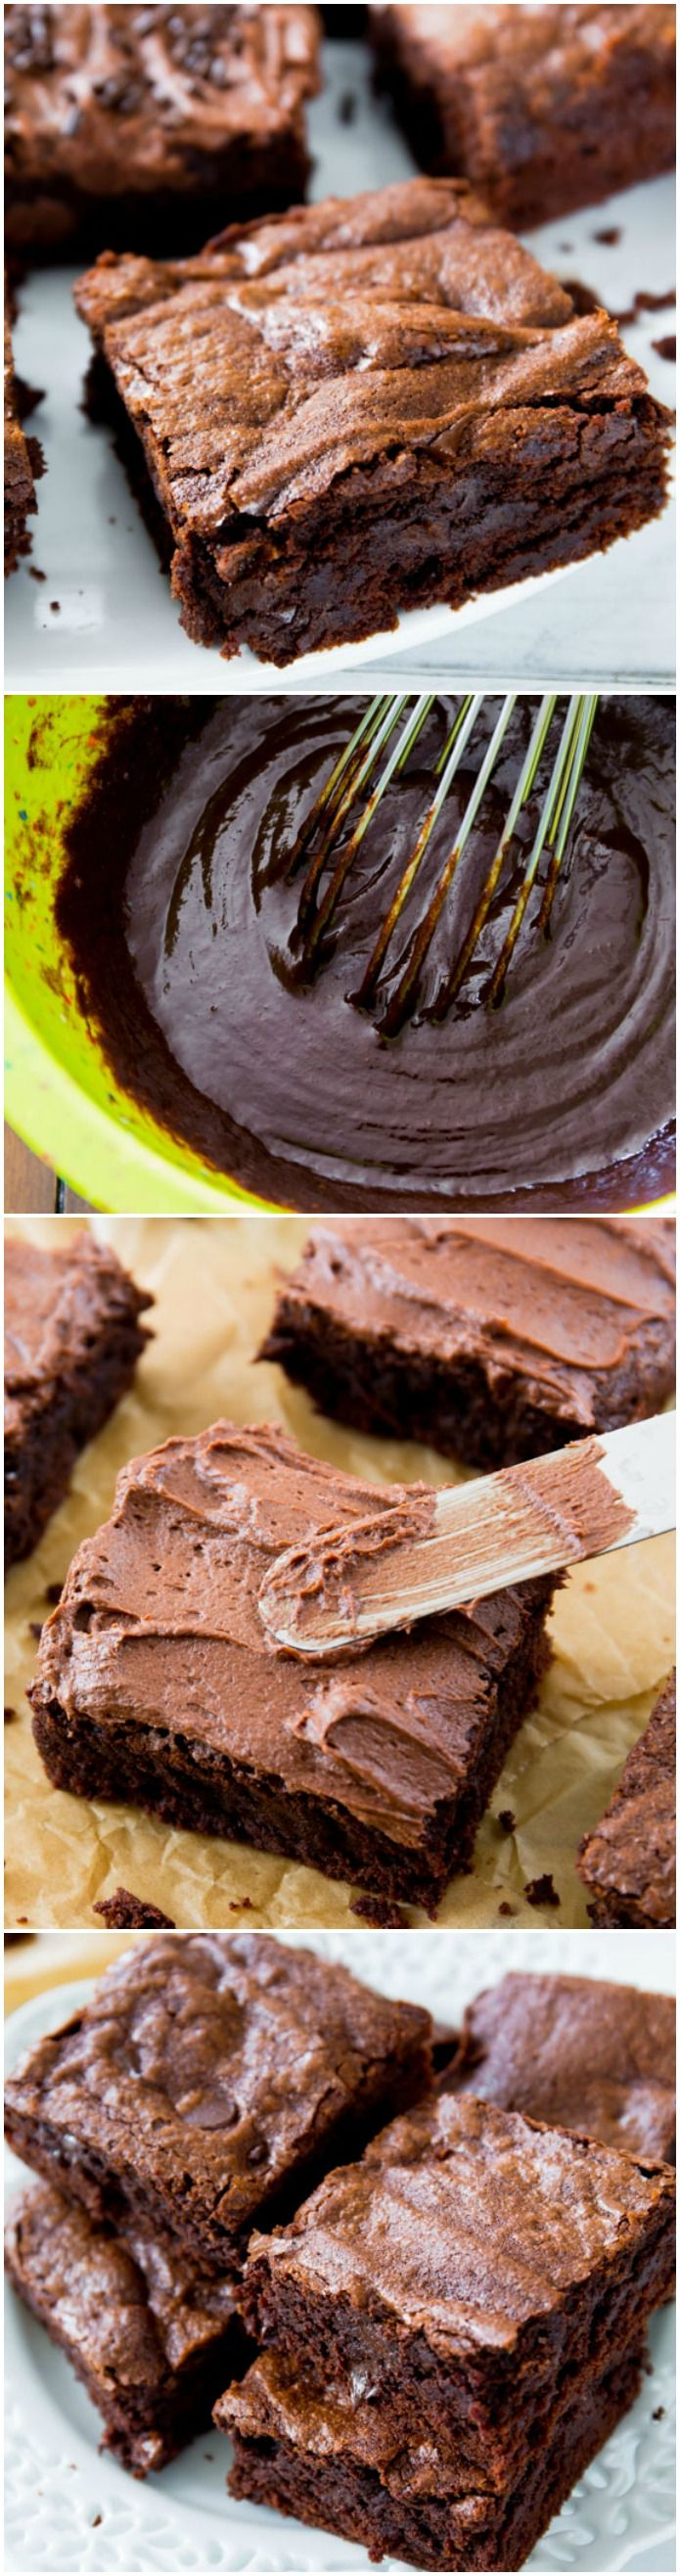 Chewy Fudgy Homemade Brownies ~ Make a whole batch of homemade brownies with this recipe that makes the process absolutely easy. It calls for some simple ingredients you surely have on hand, and you will be amazed how easy they are to whip up!